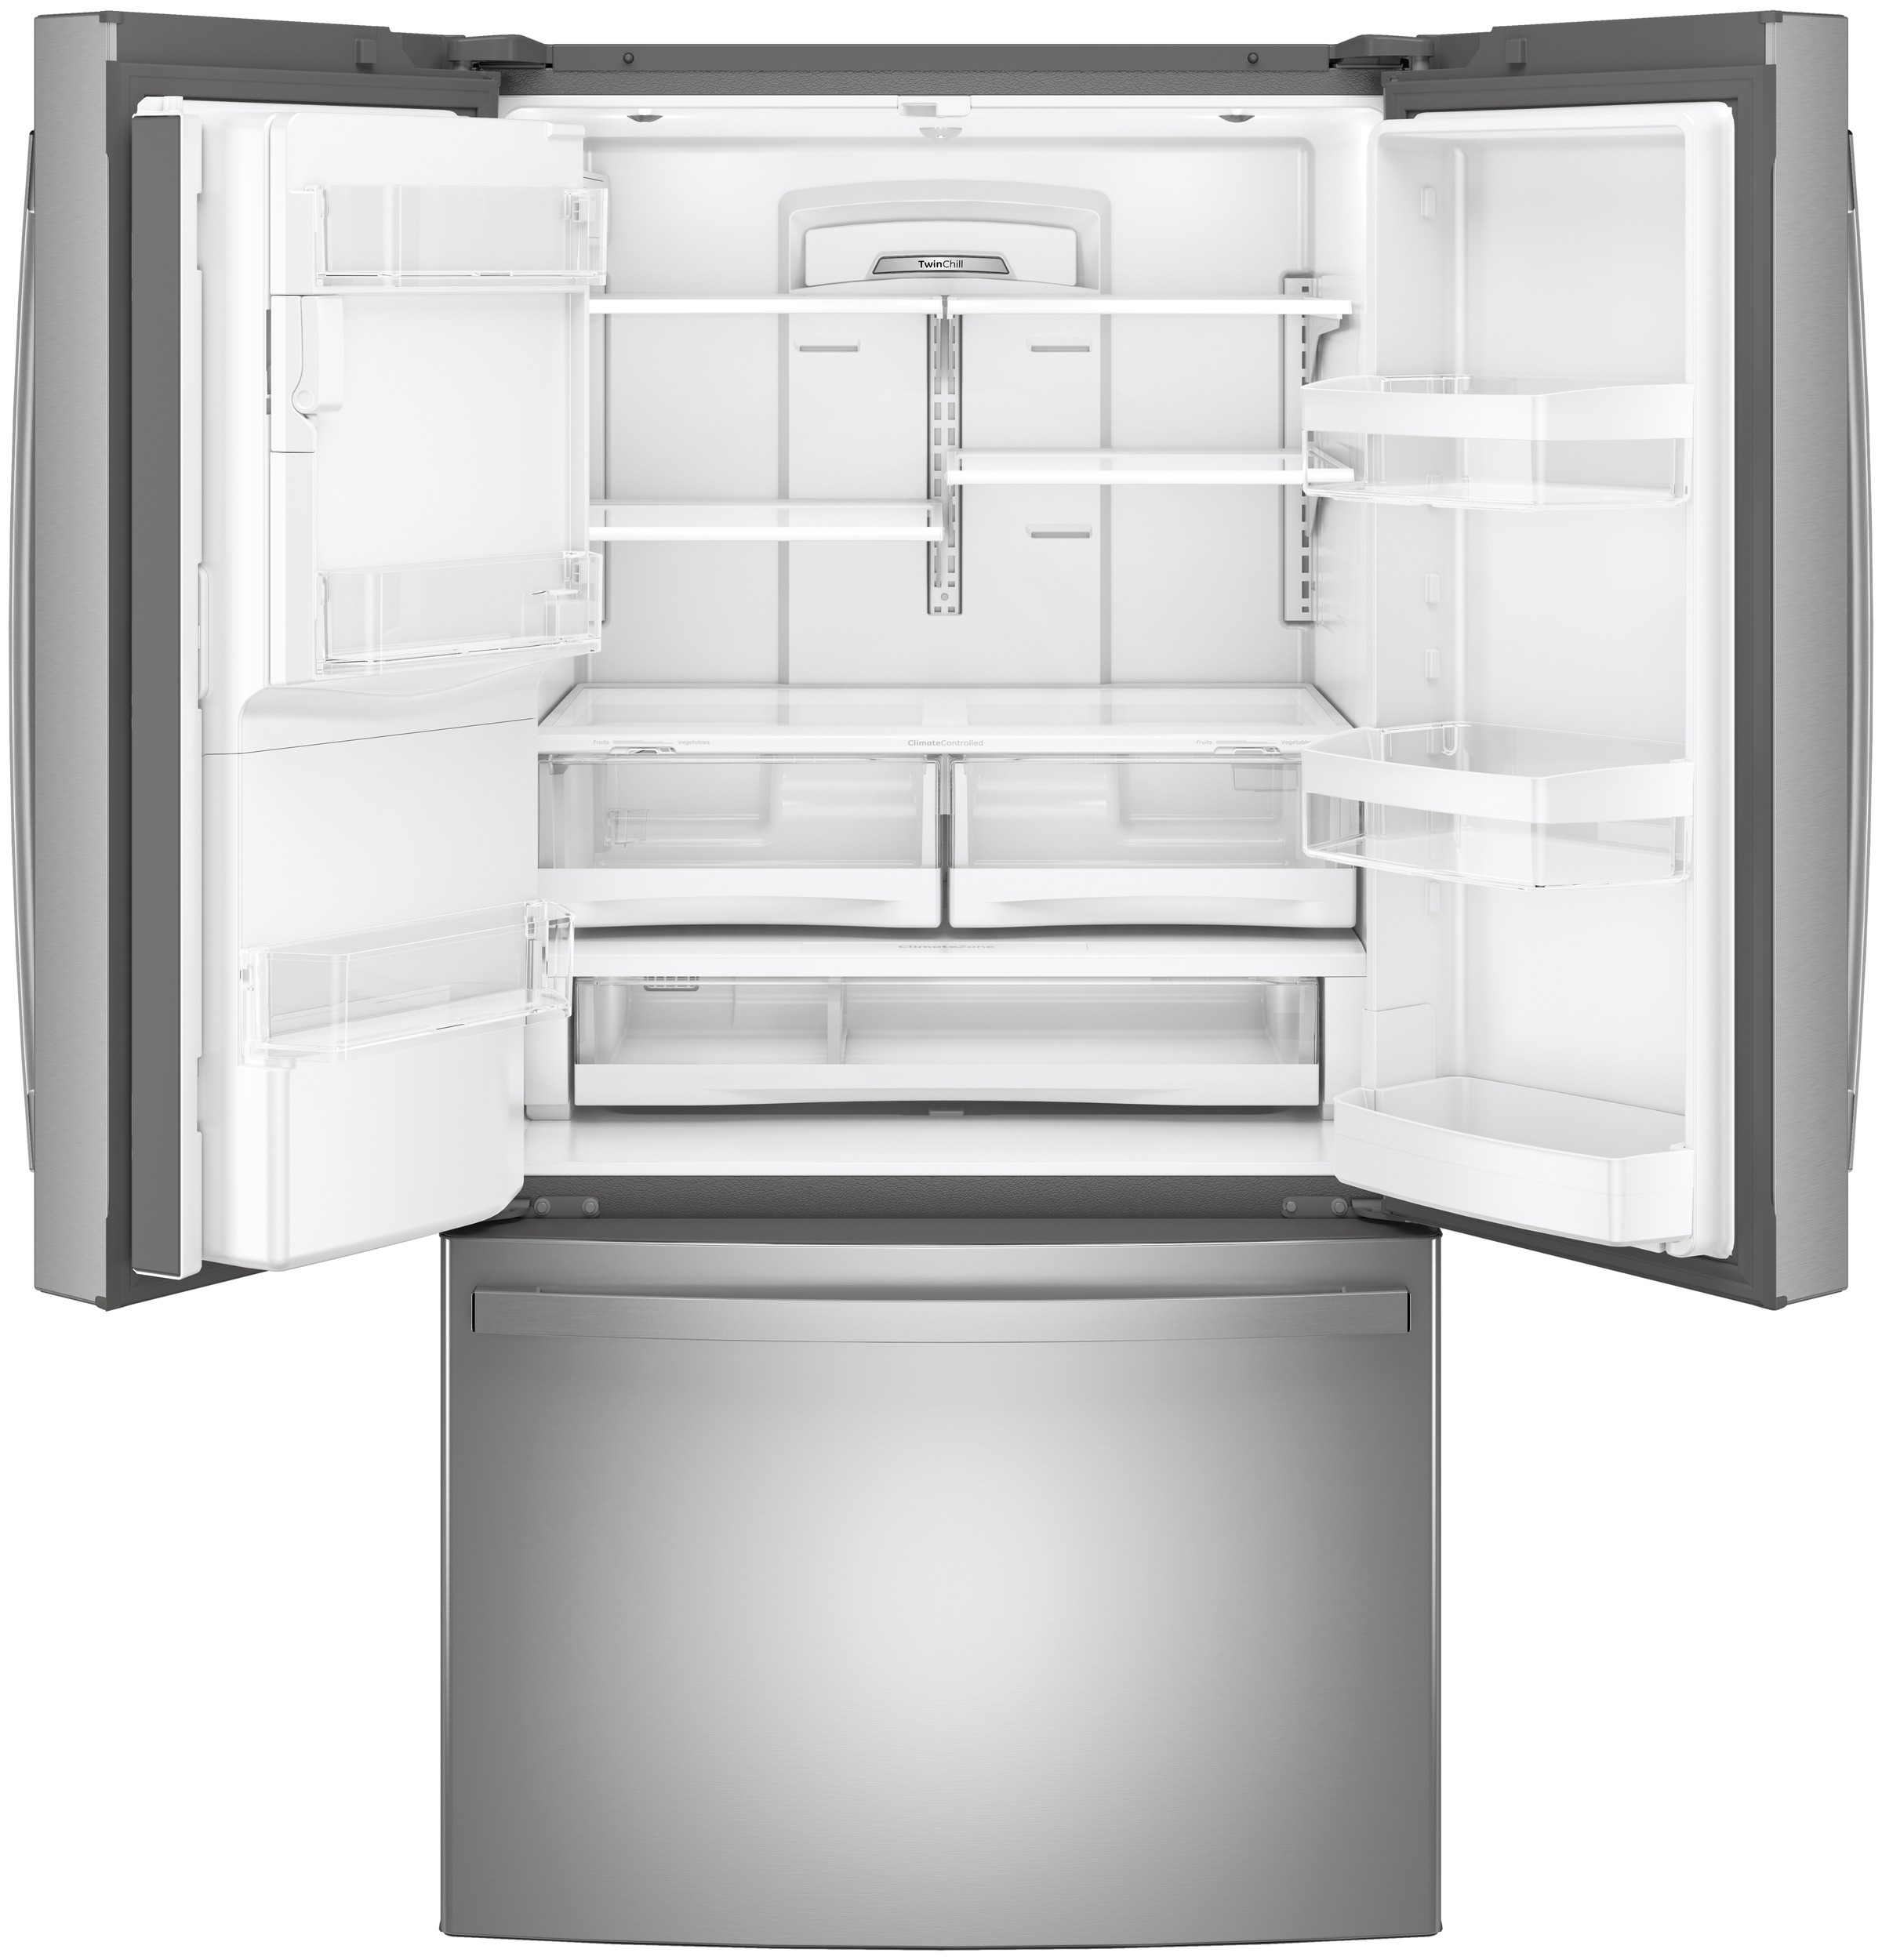 Model: GFE28GYNFS | GE GE® ENERGY STAR® 27.7 Cu. Ft. Fingerprint Resistant French-Door Refrigerator